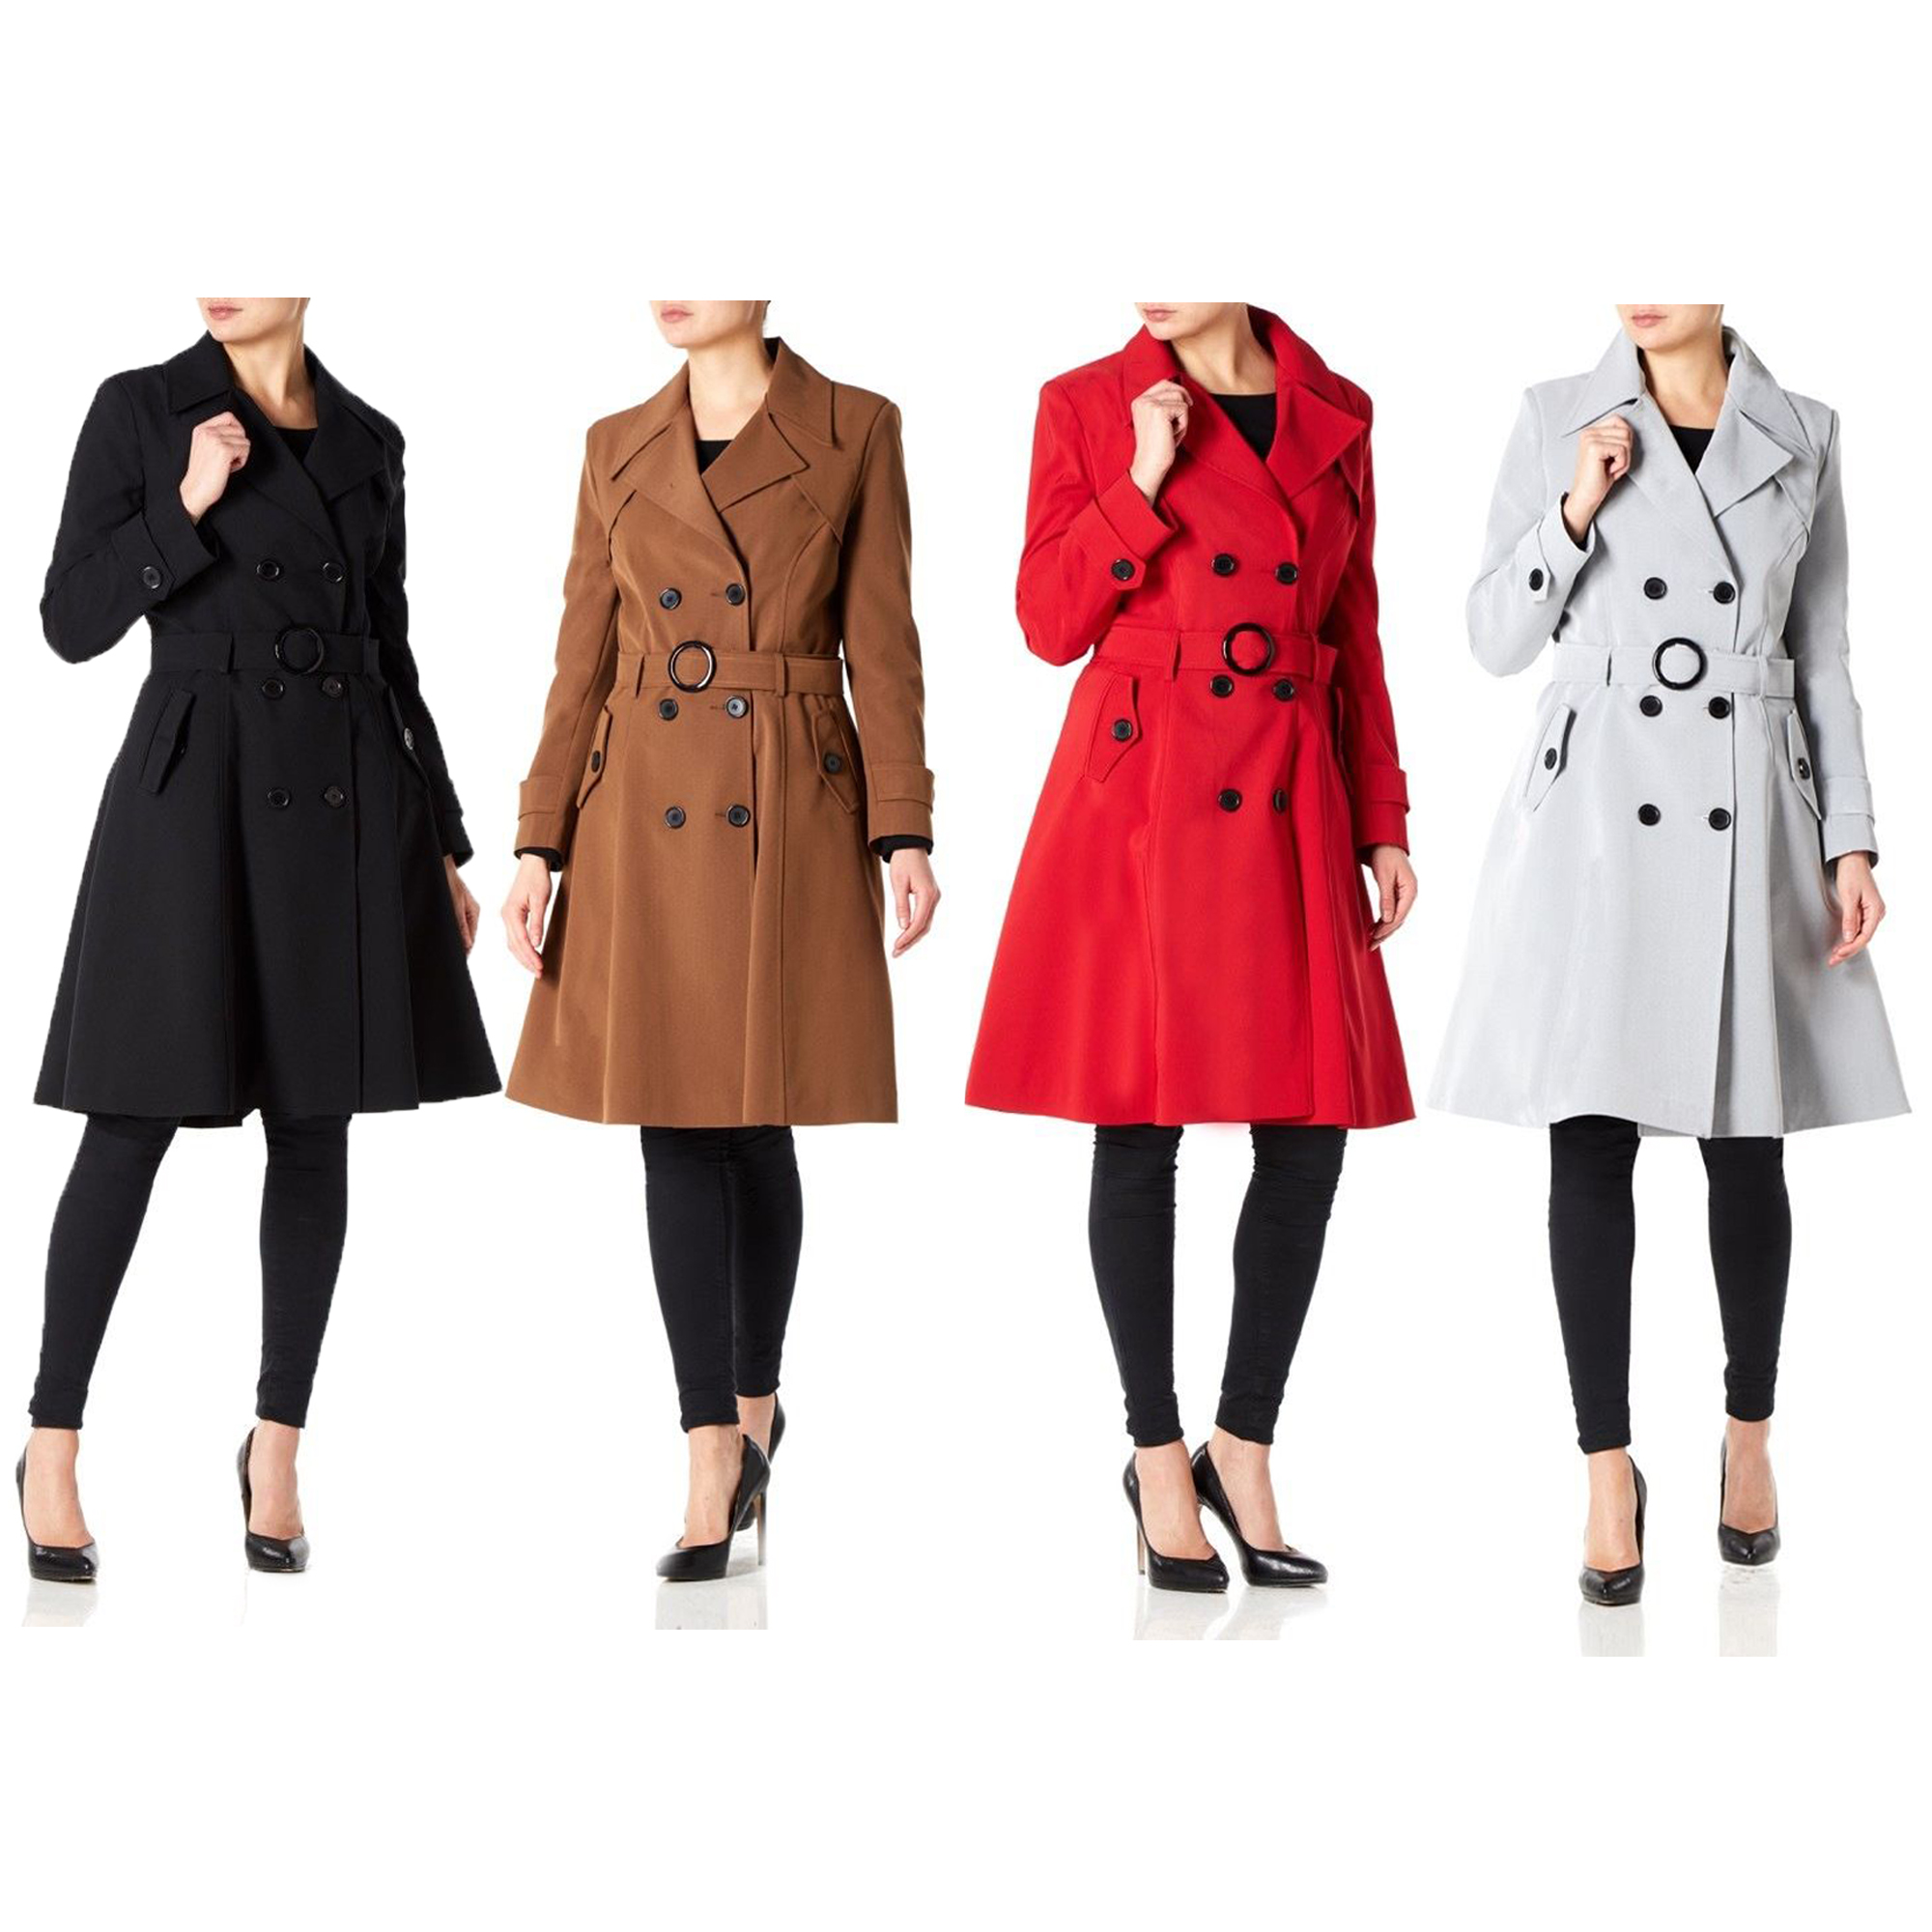 Ladies Mac Trench Coat Womens Double Breasted Jacket Belt Spring Summer Fashion Ebay